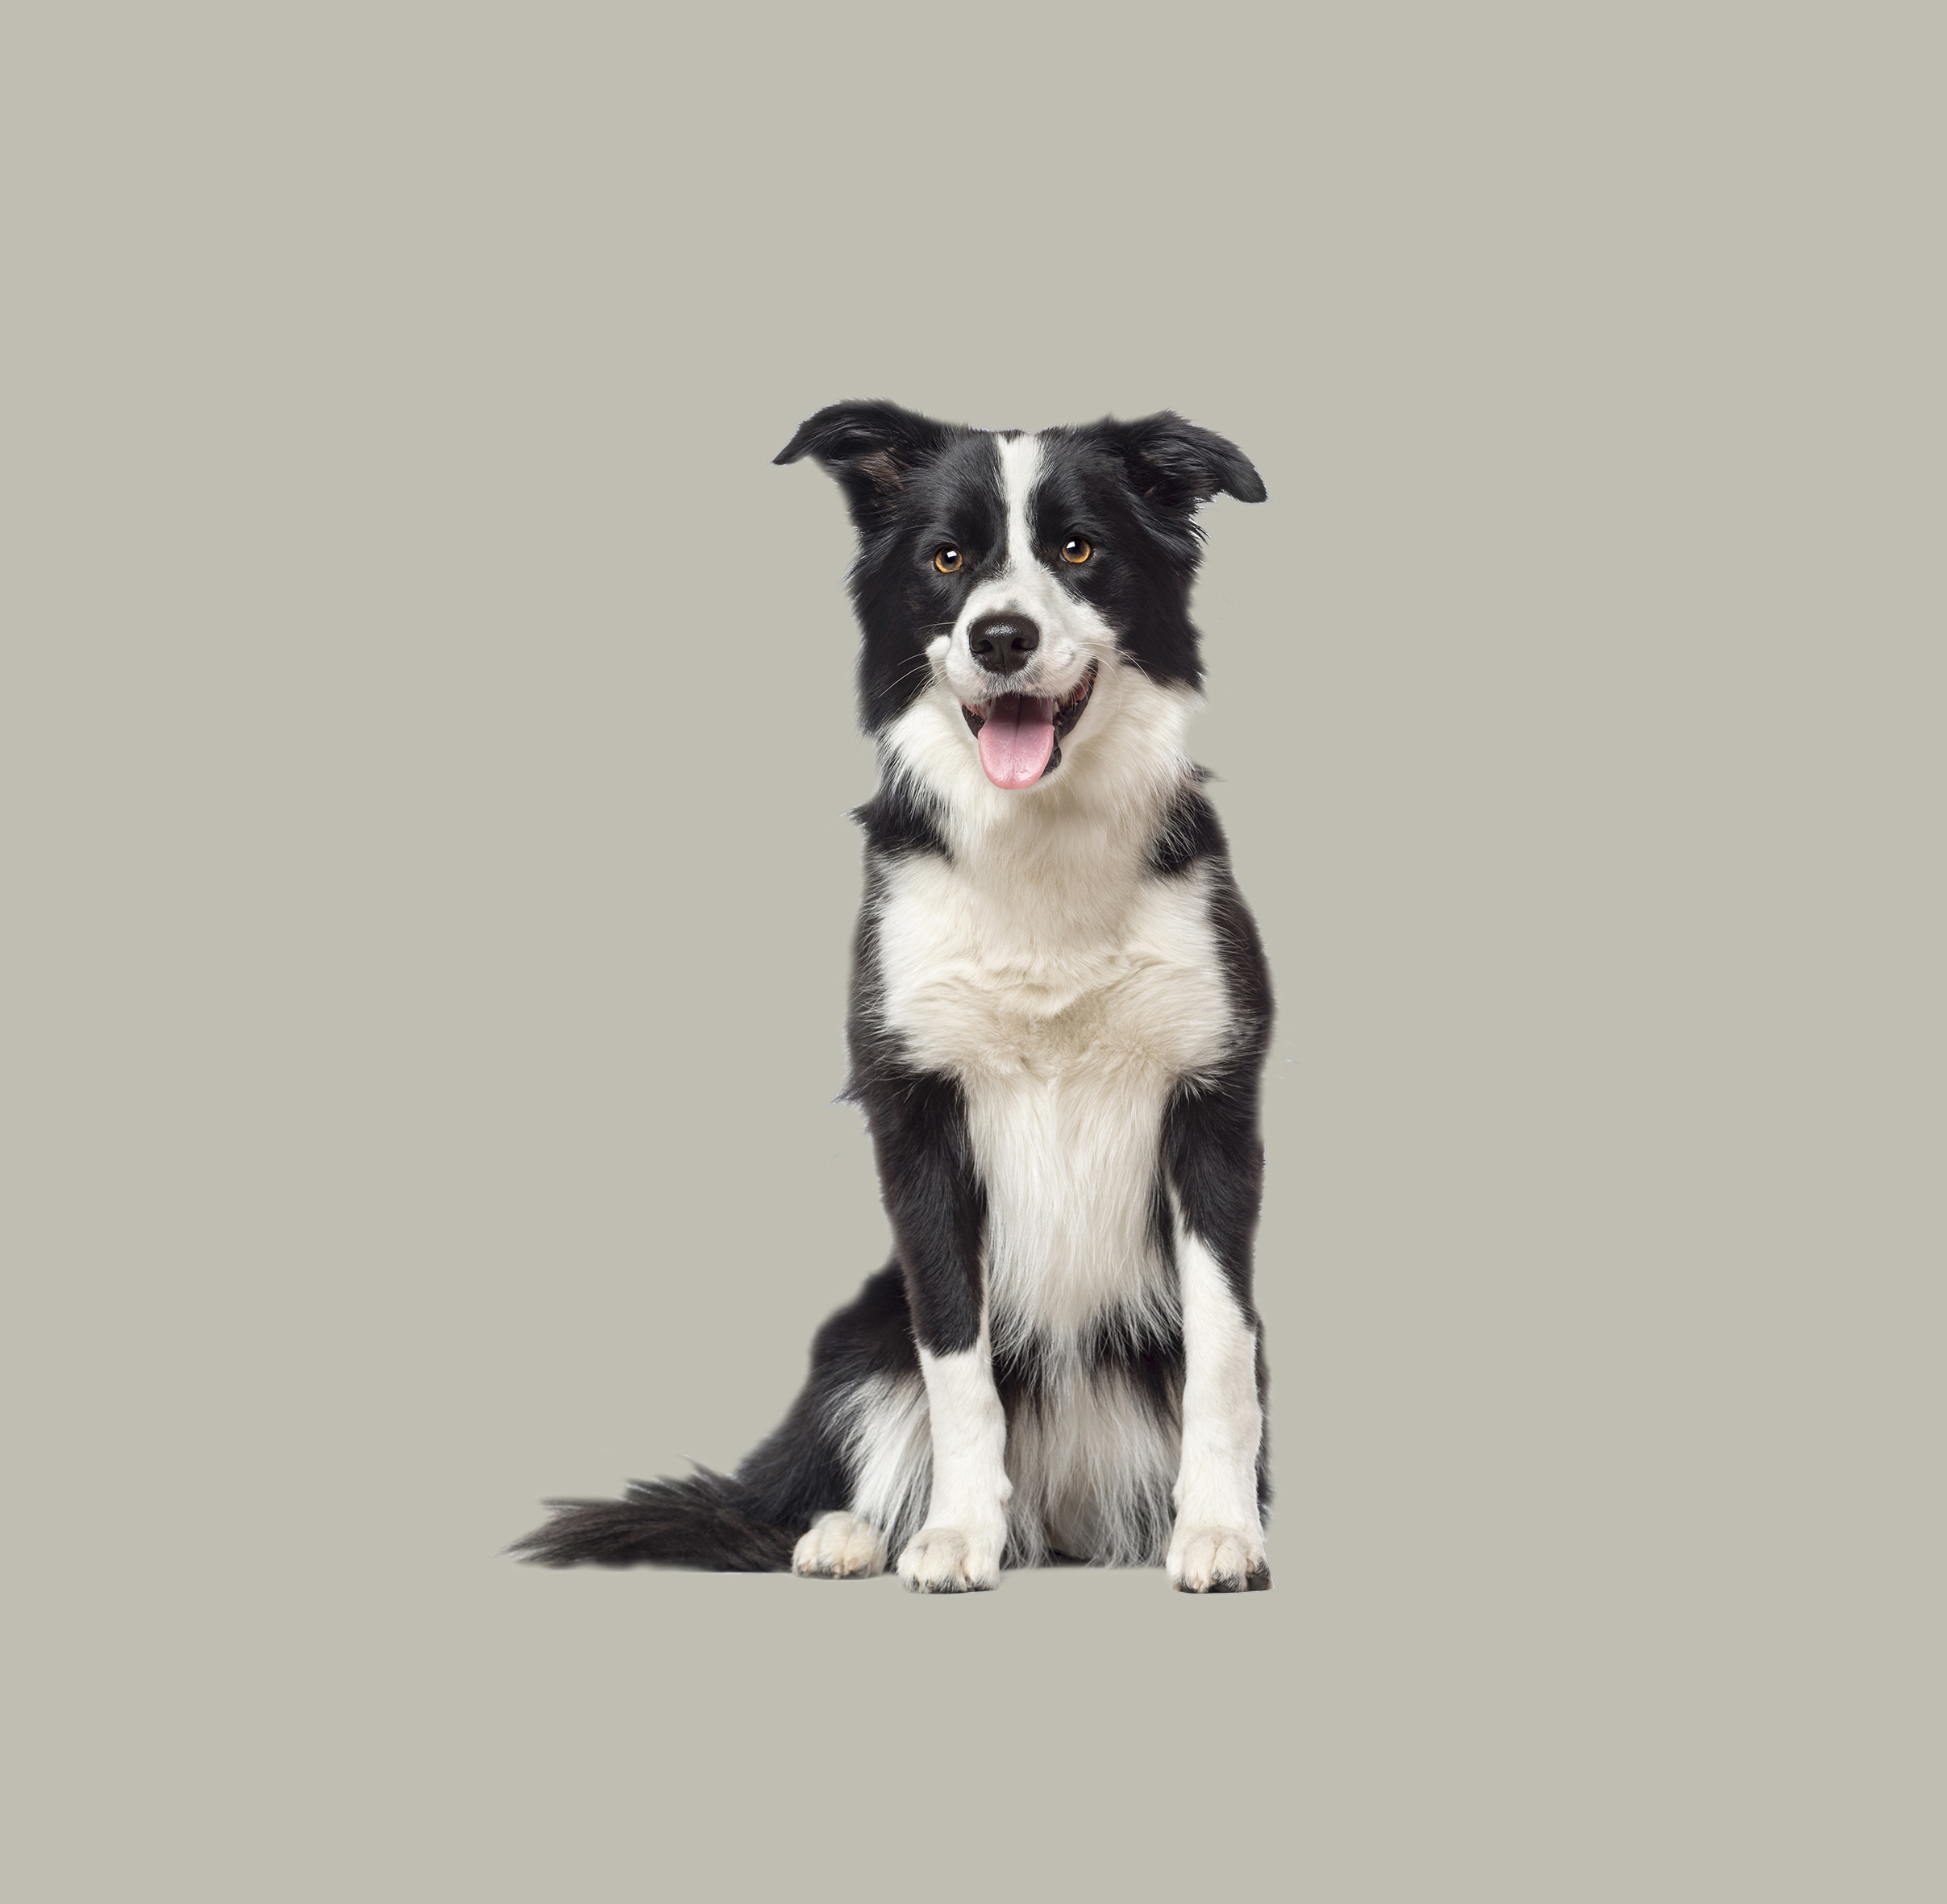 Treatments for Dogs - McDowell's Herbal Treatments